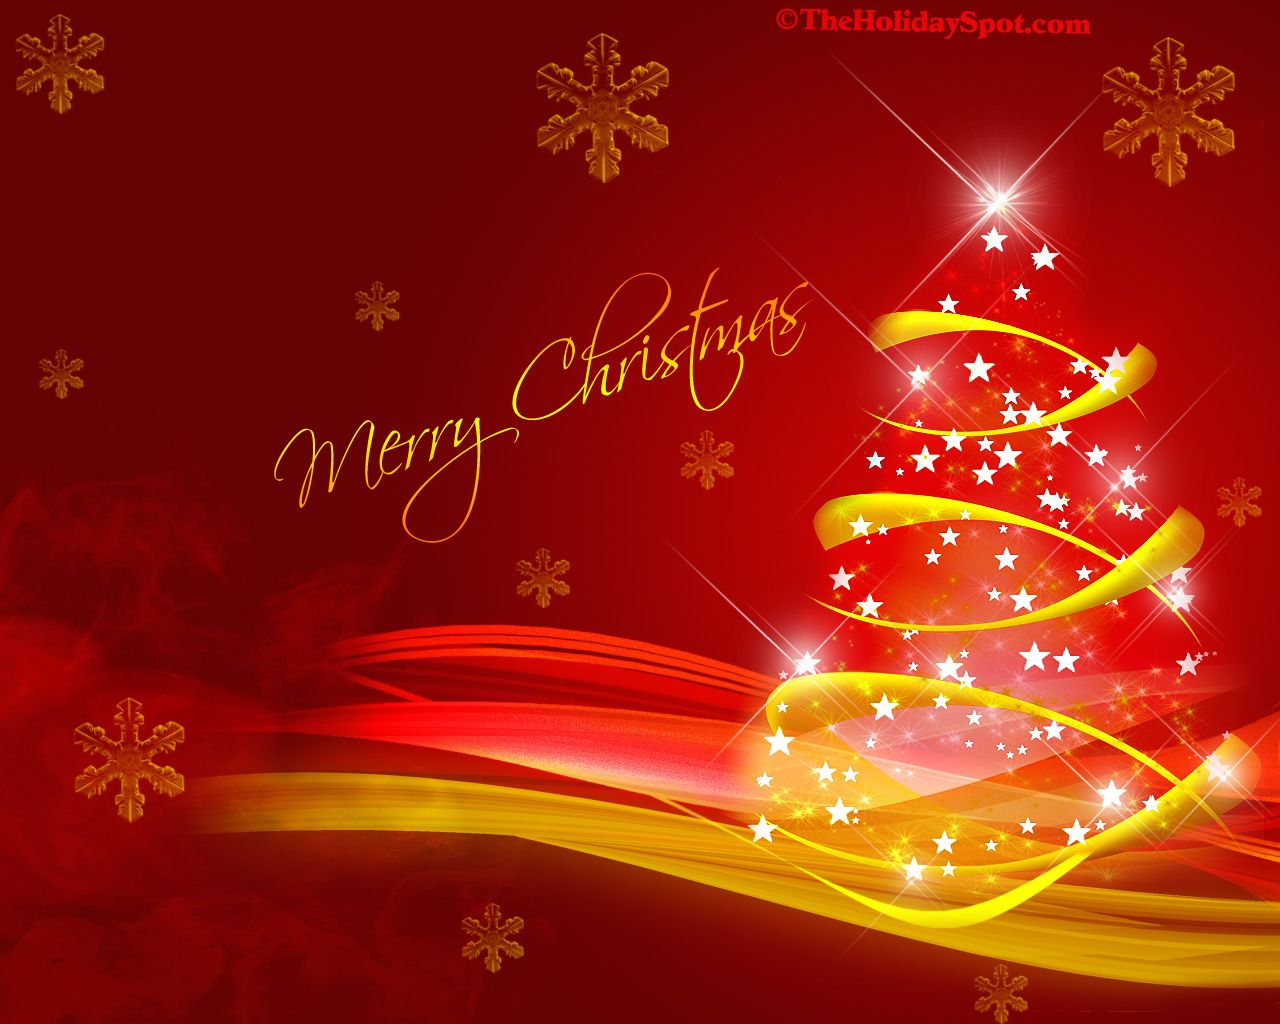 Beautiful Christmas Wishes Poems Sayings Pics Free Merry